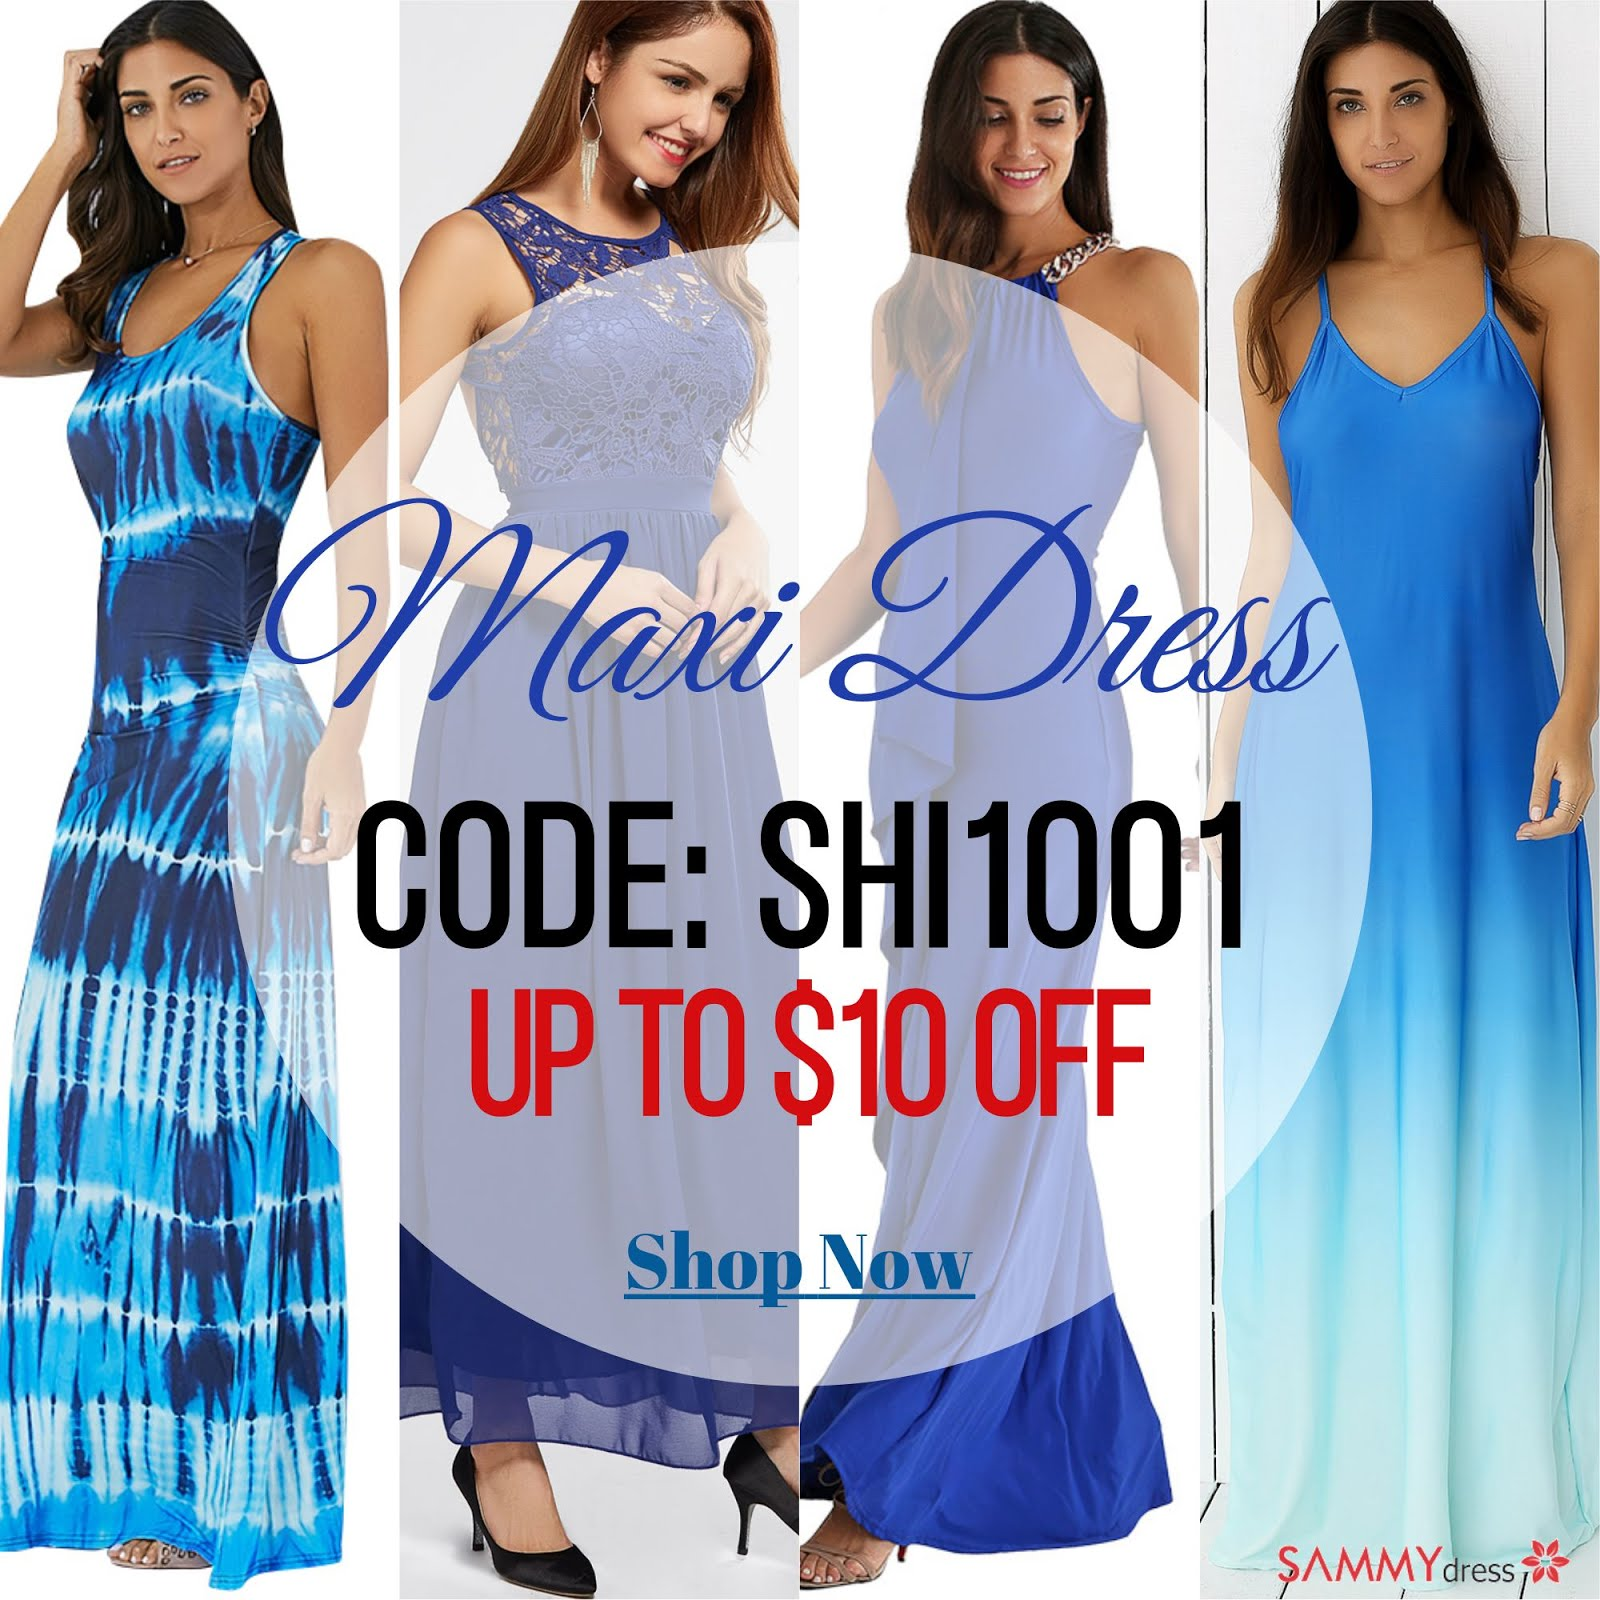 MAXYDRESSES